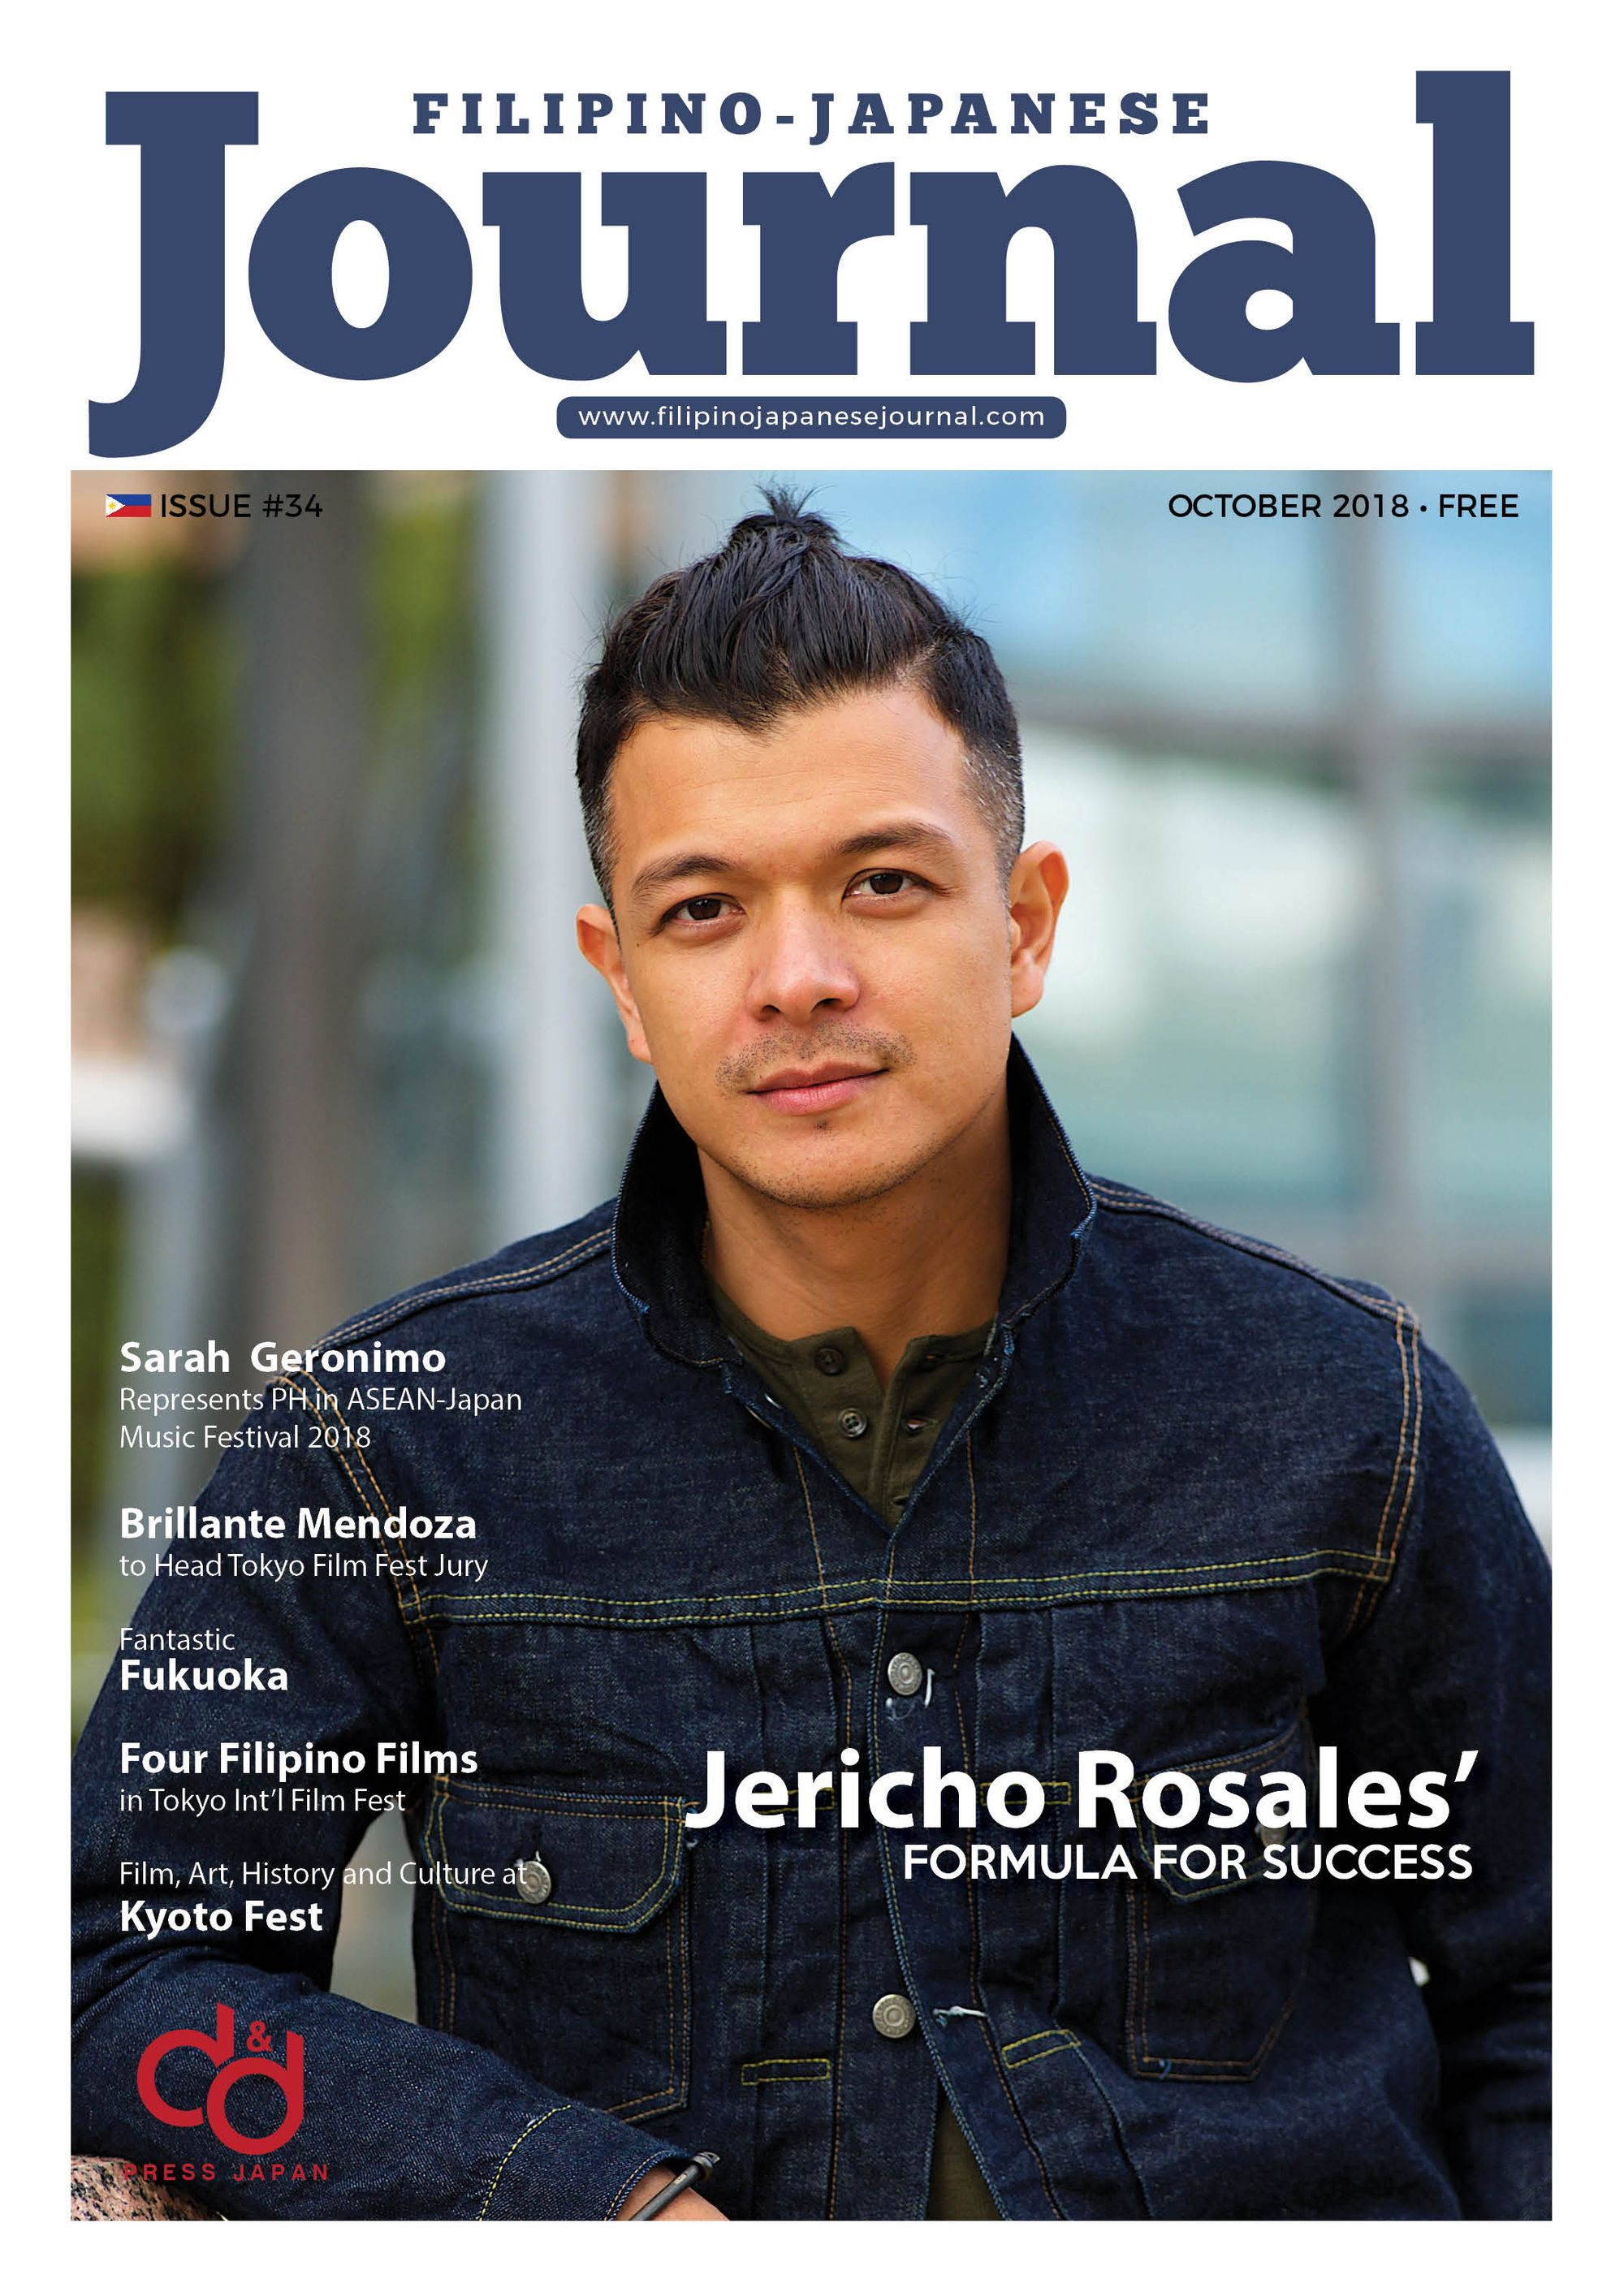 EXCLUSIVE Photos: Jericho Rosales' Formula for Success